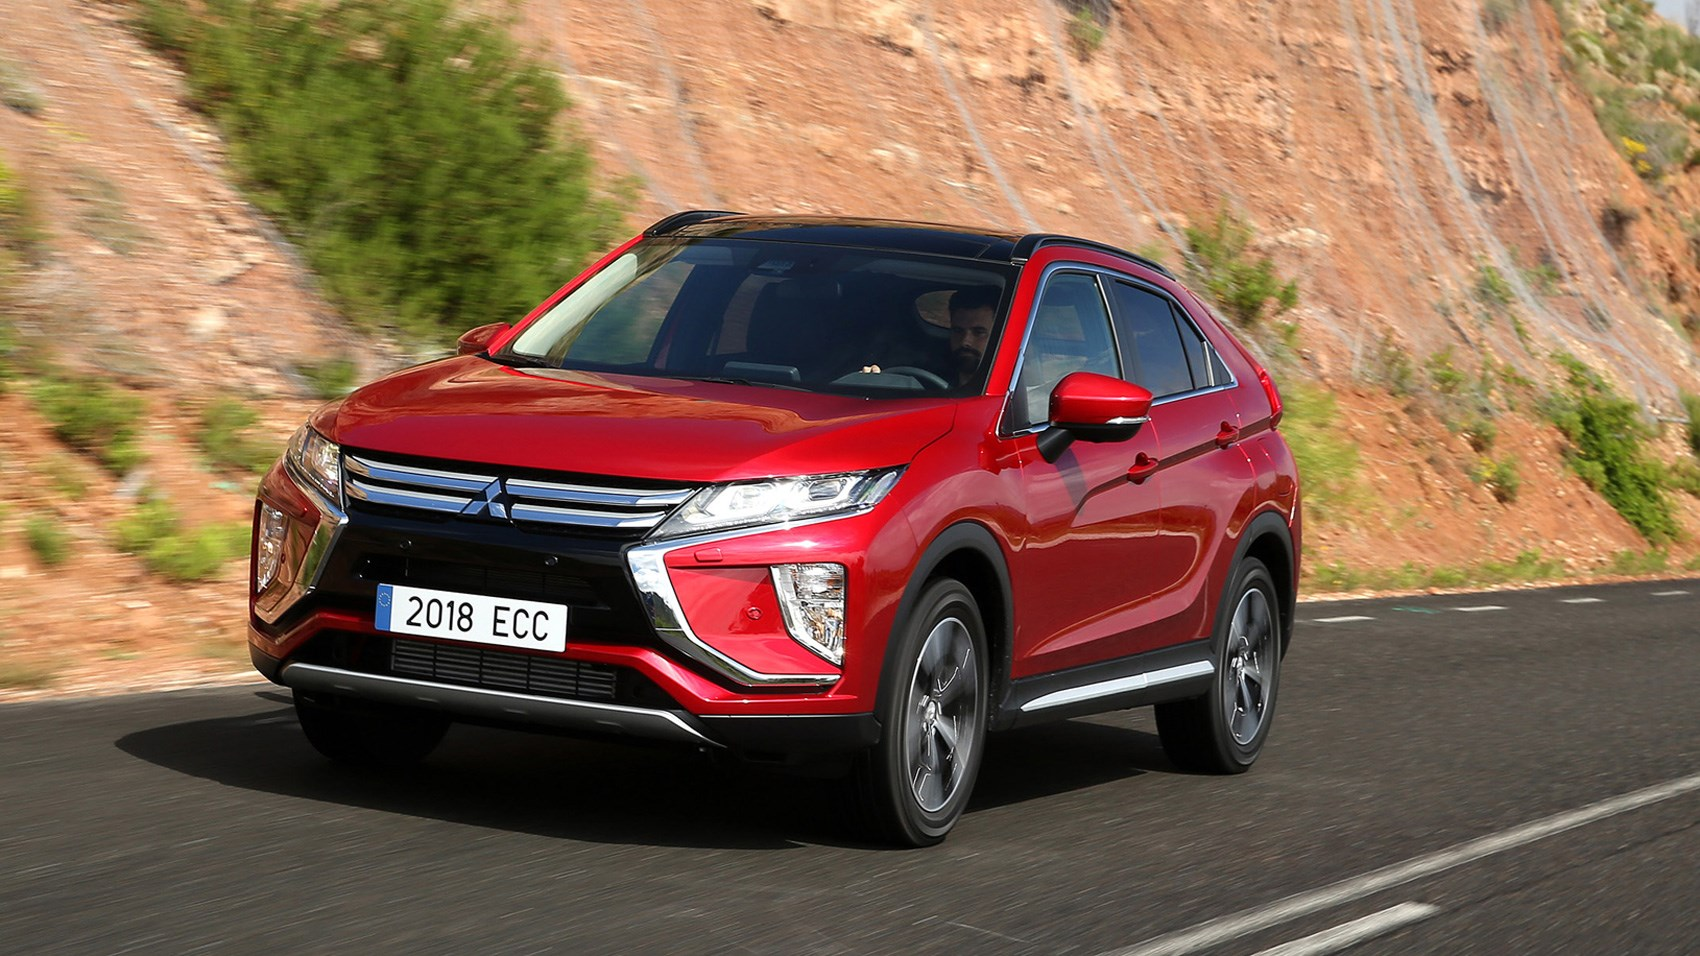 Range Rover Evoque Review >> Mitsubishi Eclipse Cross 1.5 4WD CVT (2017) review by CAR Magazine